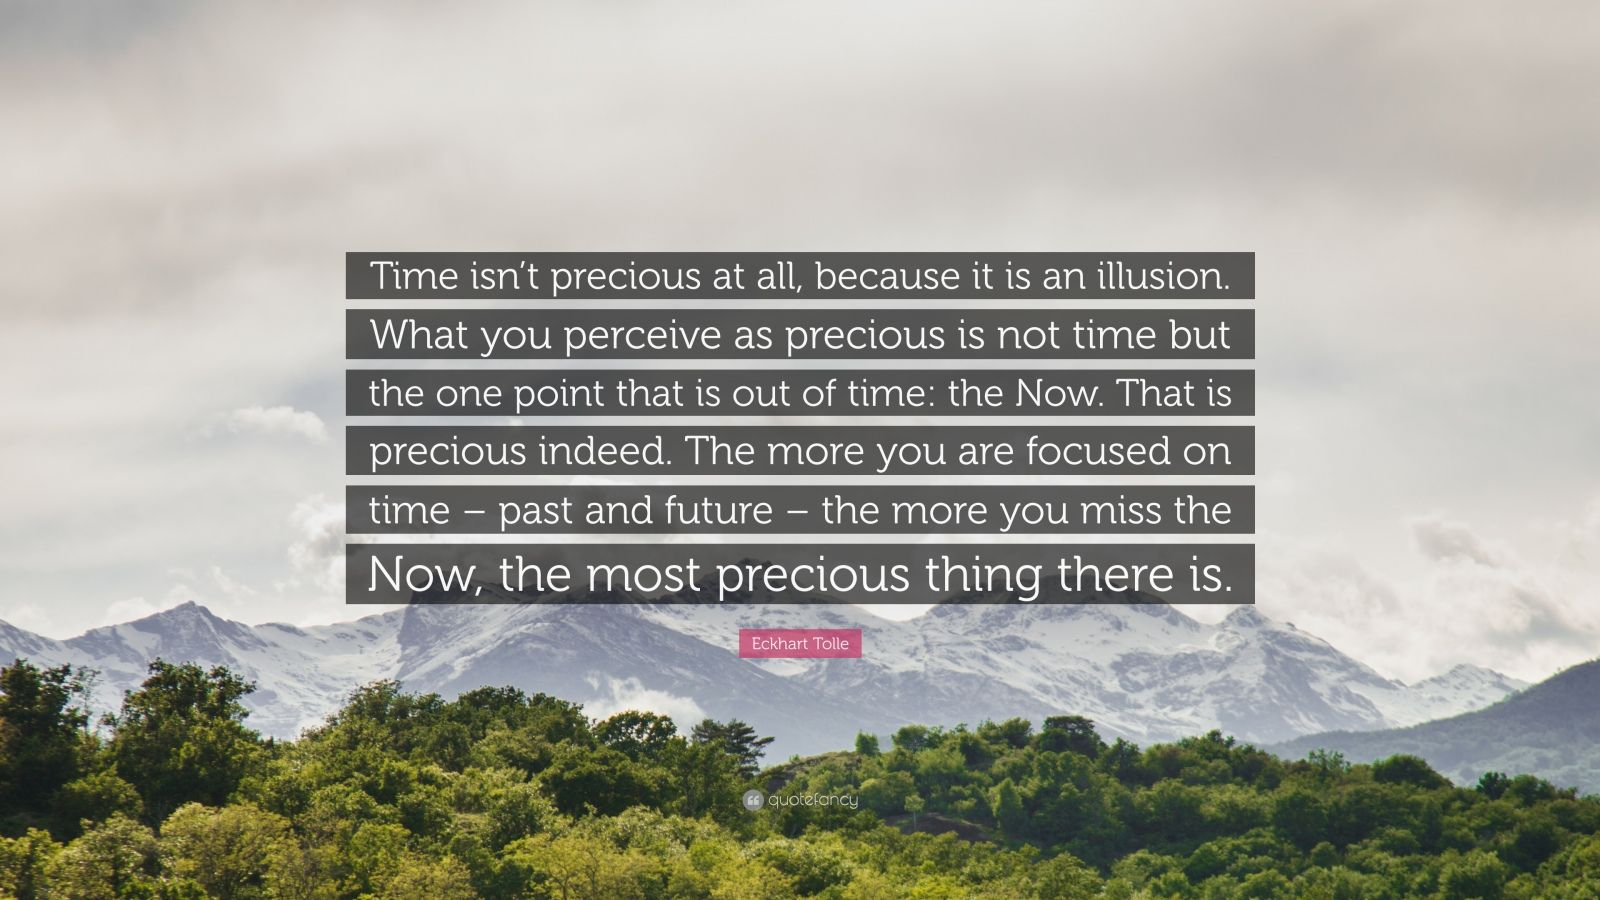 "Eckhart Tolle Quote: ""Time isn't precious at all, because it is an illusion. What you perceive as precious is not time but the one point that is out of time: the Now. That is precious indeed. The more you are focused on time – past and future – the more you miss the Now, the most precious thing there is."""